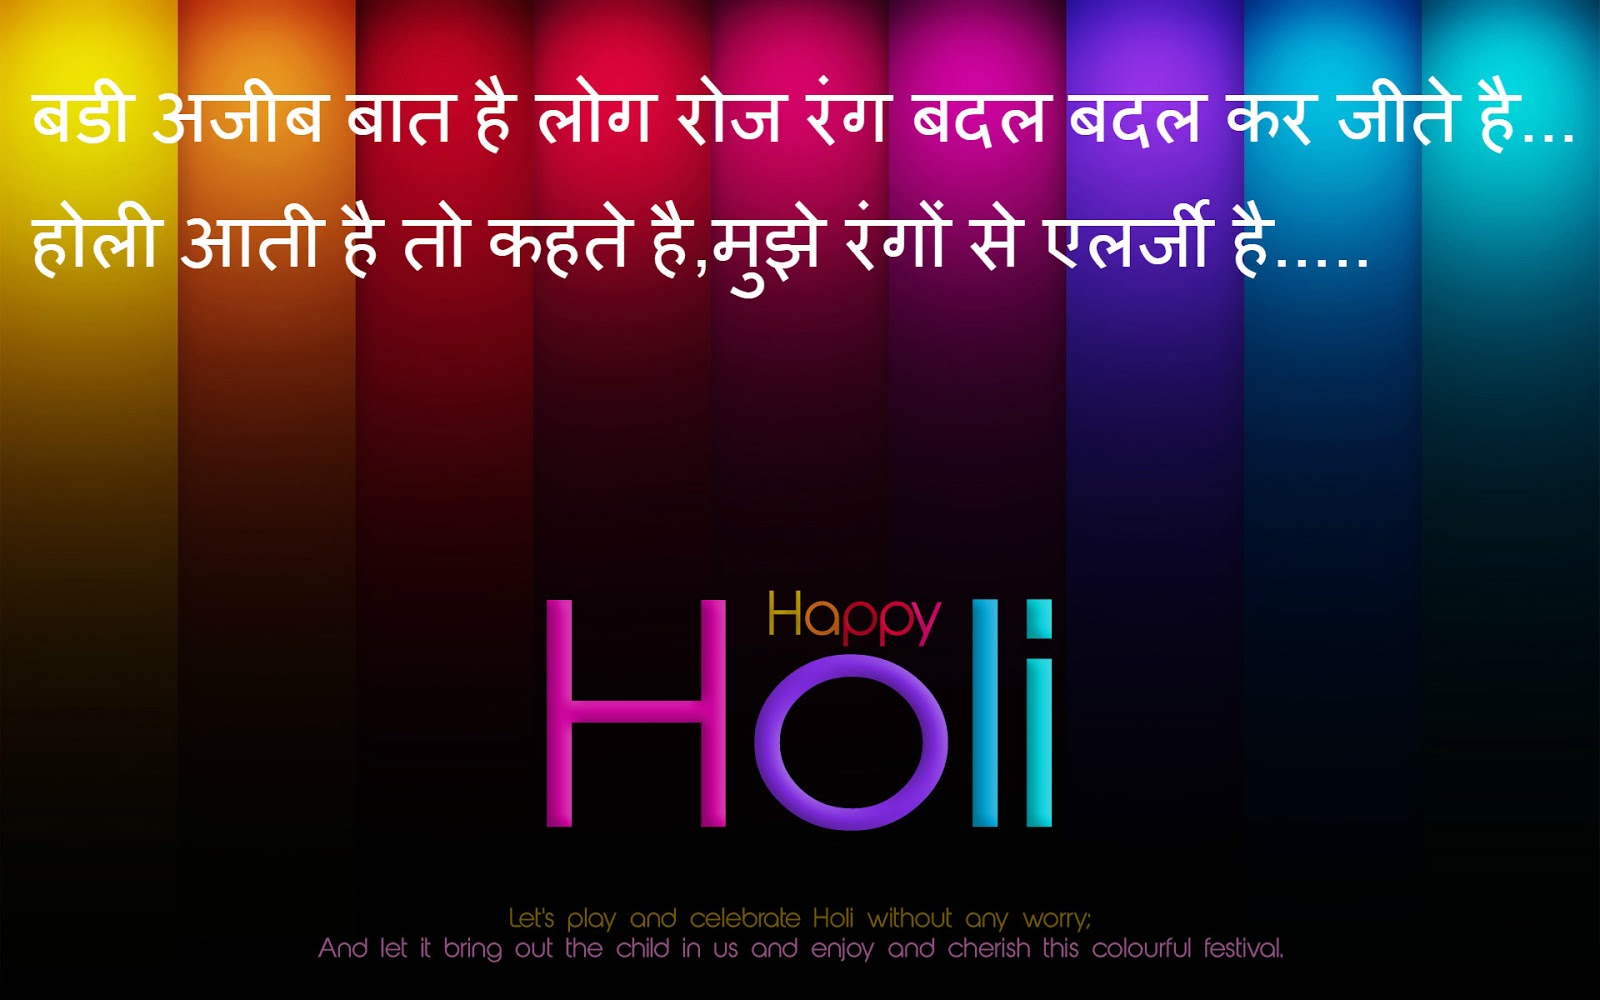 Holi%2Bshayari%2Bimage333333333333333333333333333333333333%2B%25281%2529 - Best Shayari images of holi 50+